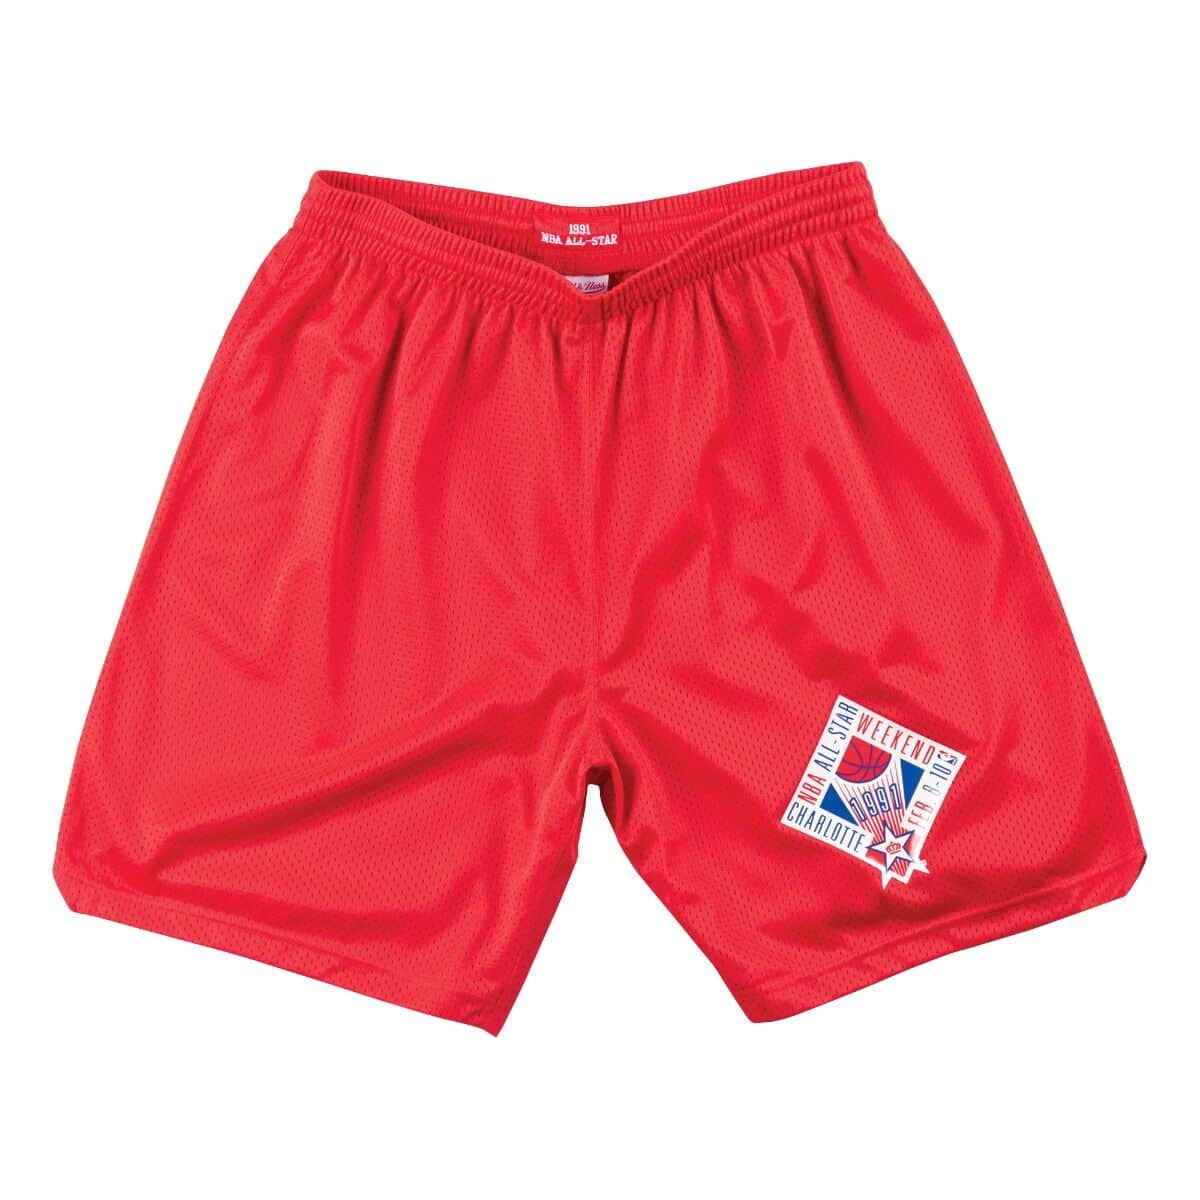 Authentic Practice Shorts All-Star 1991